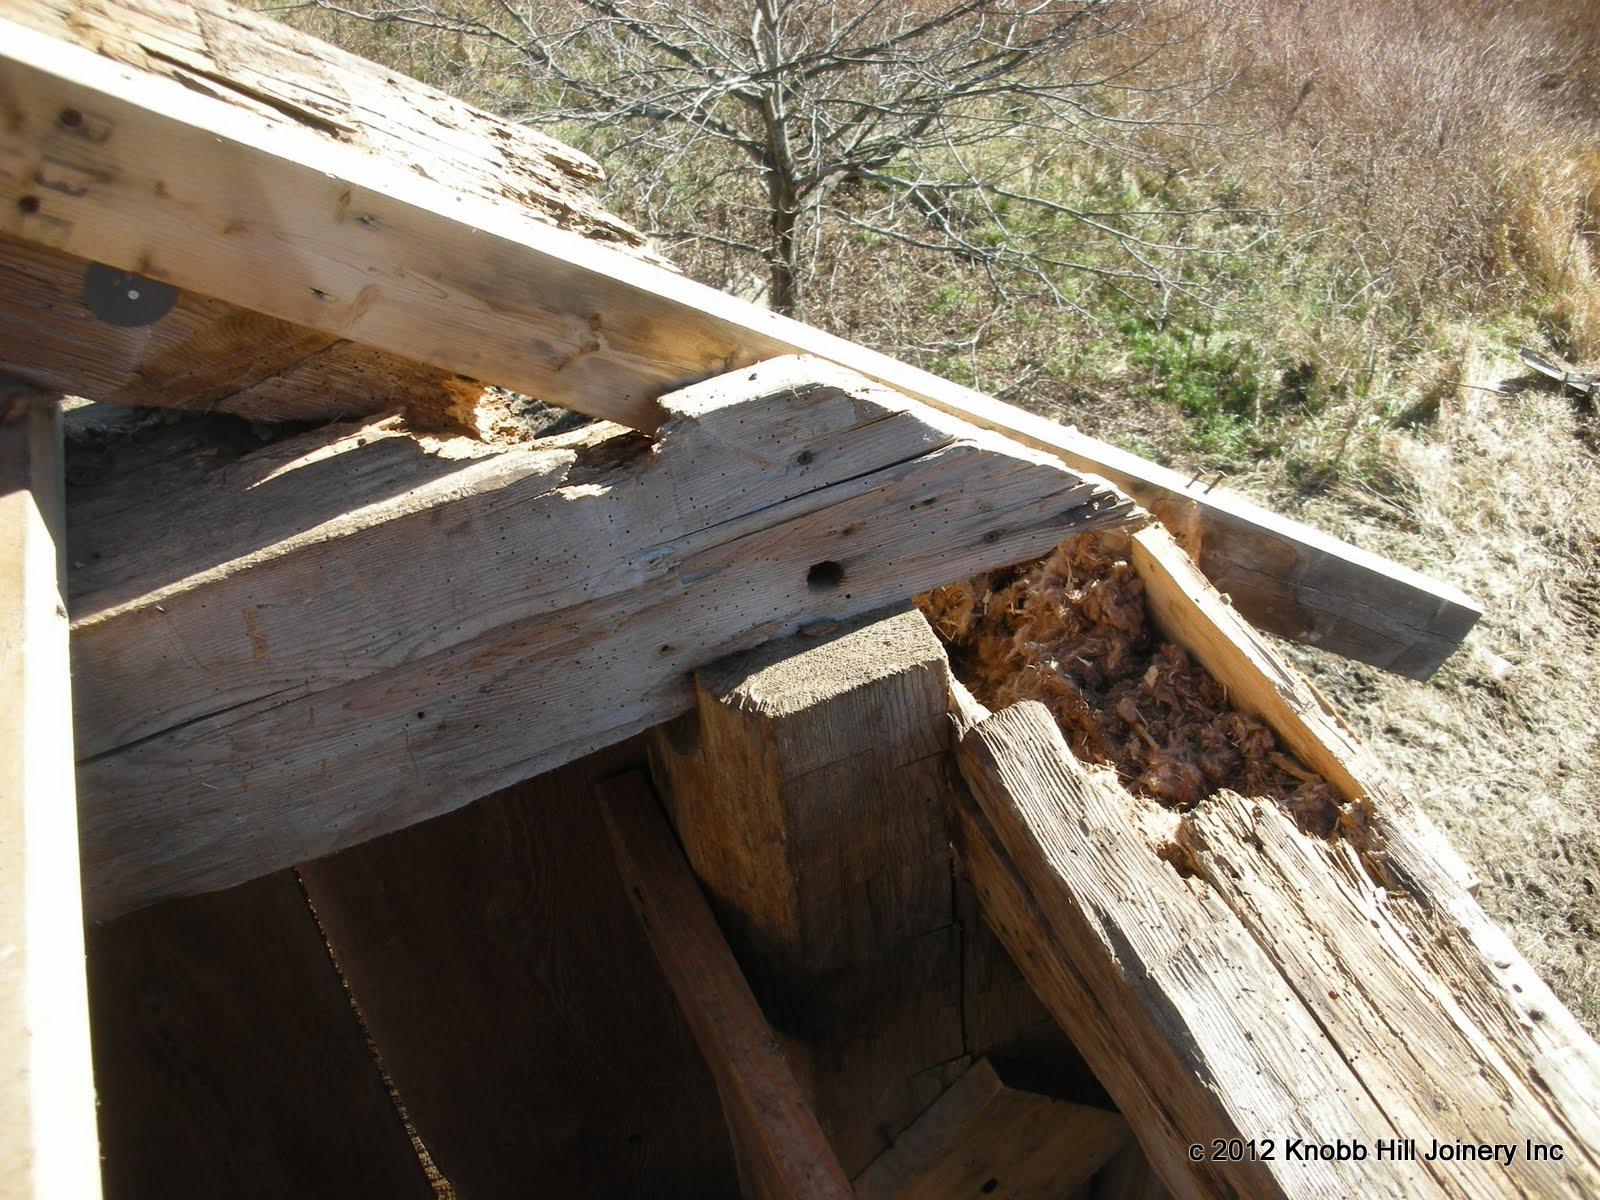 The rafter foot, tie beam, post top and plate were all destroyed at this corner post.